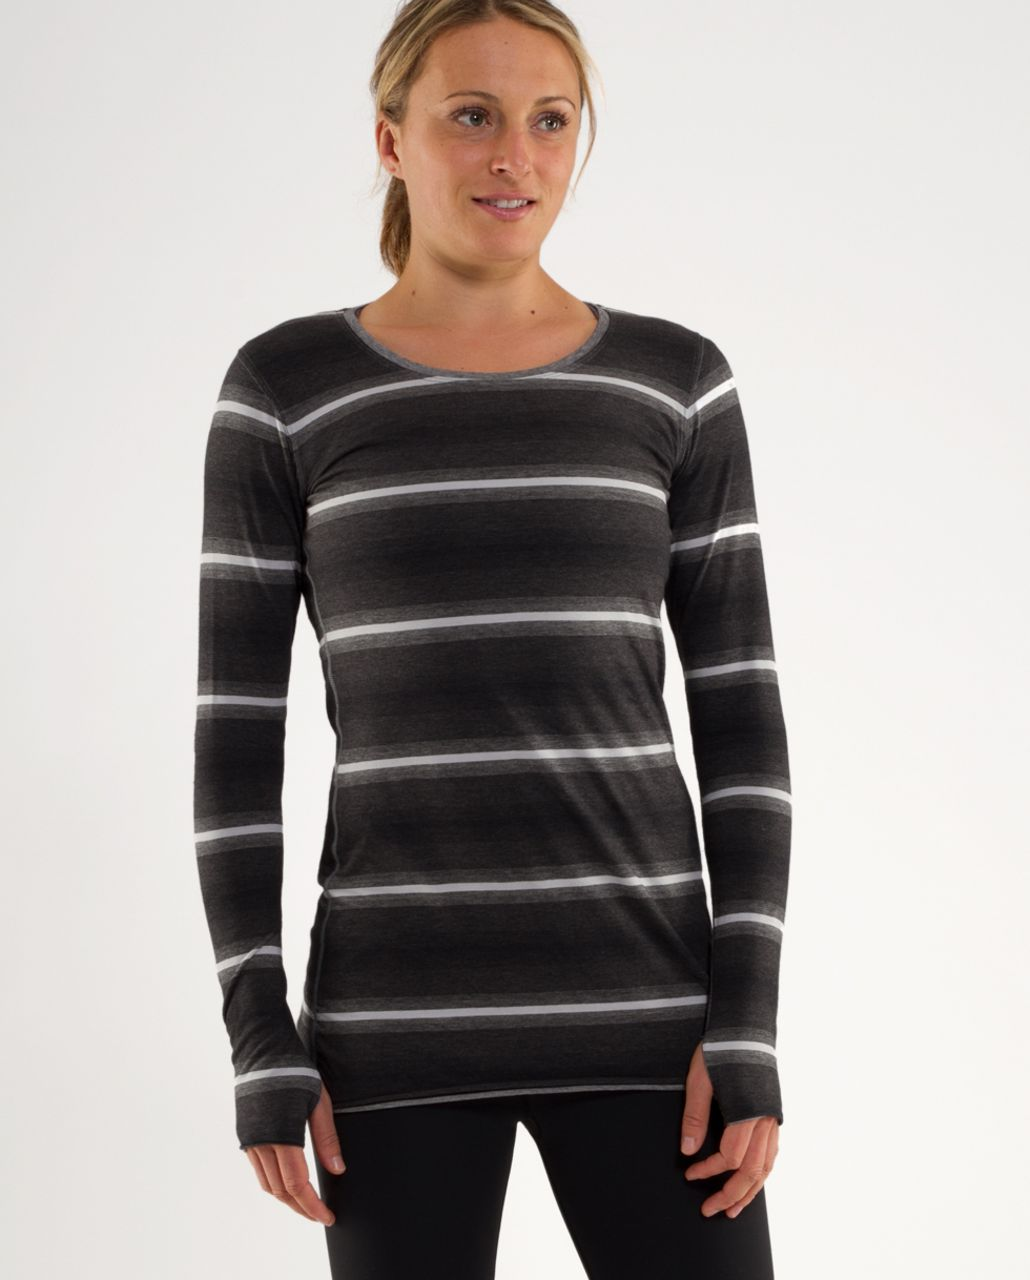 Lululemon Cabin Long Sleeve Tee II - Greys Ombre Stripes /  Heathered Blurred Grey